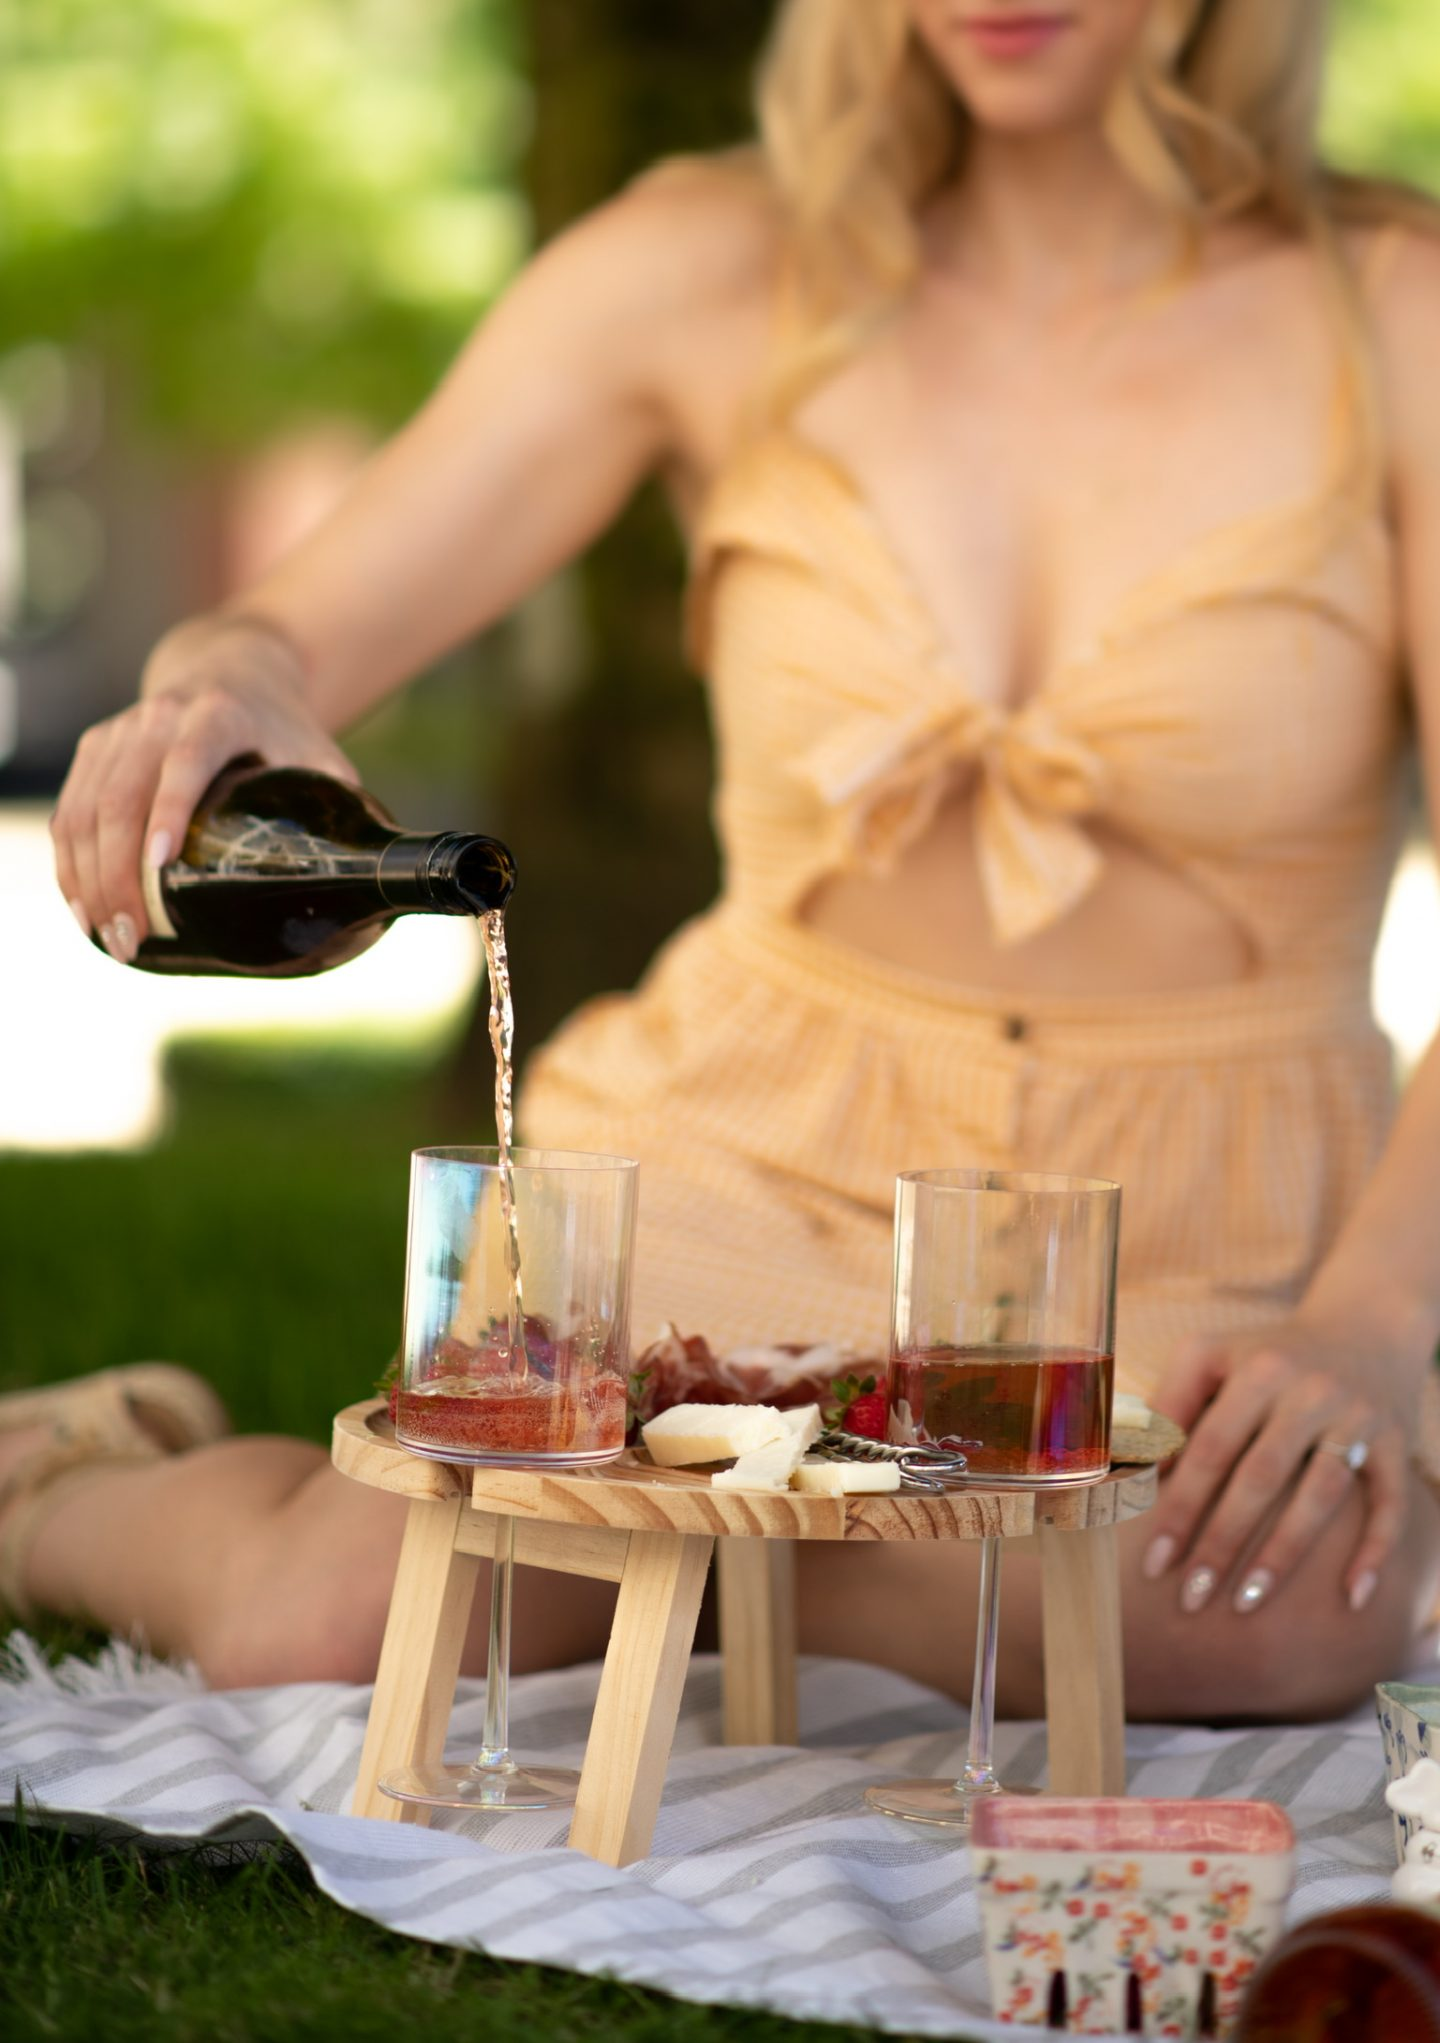 legallee blonde with foldable picnic table sharing summer picnic accessories and menu